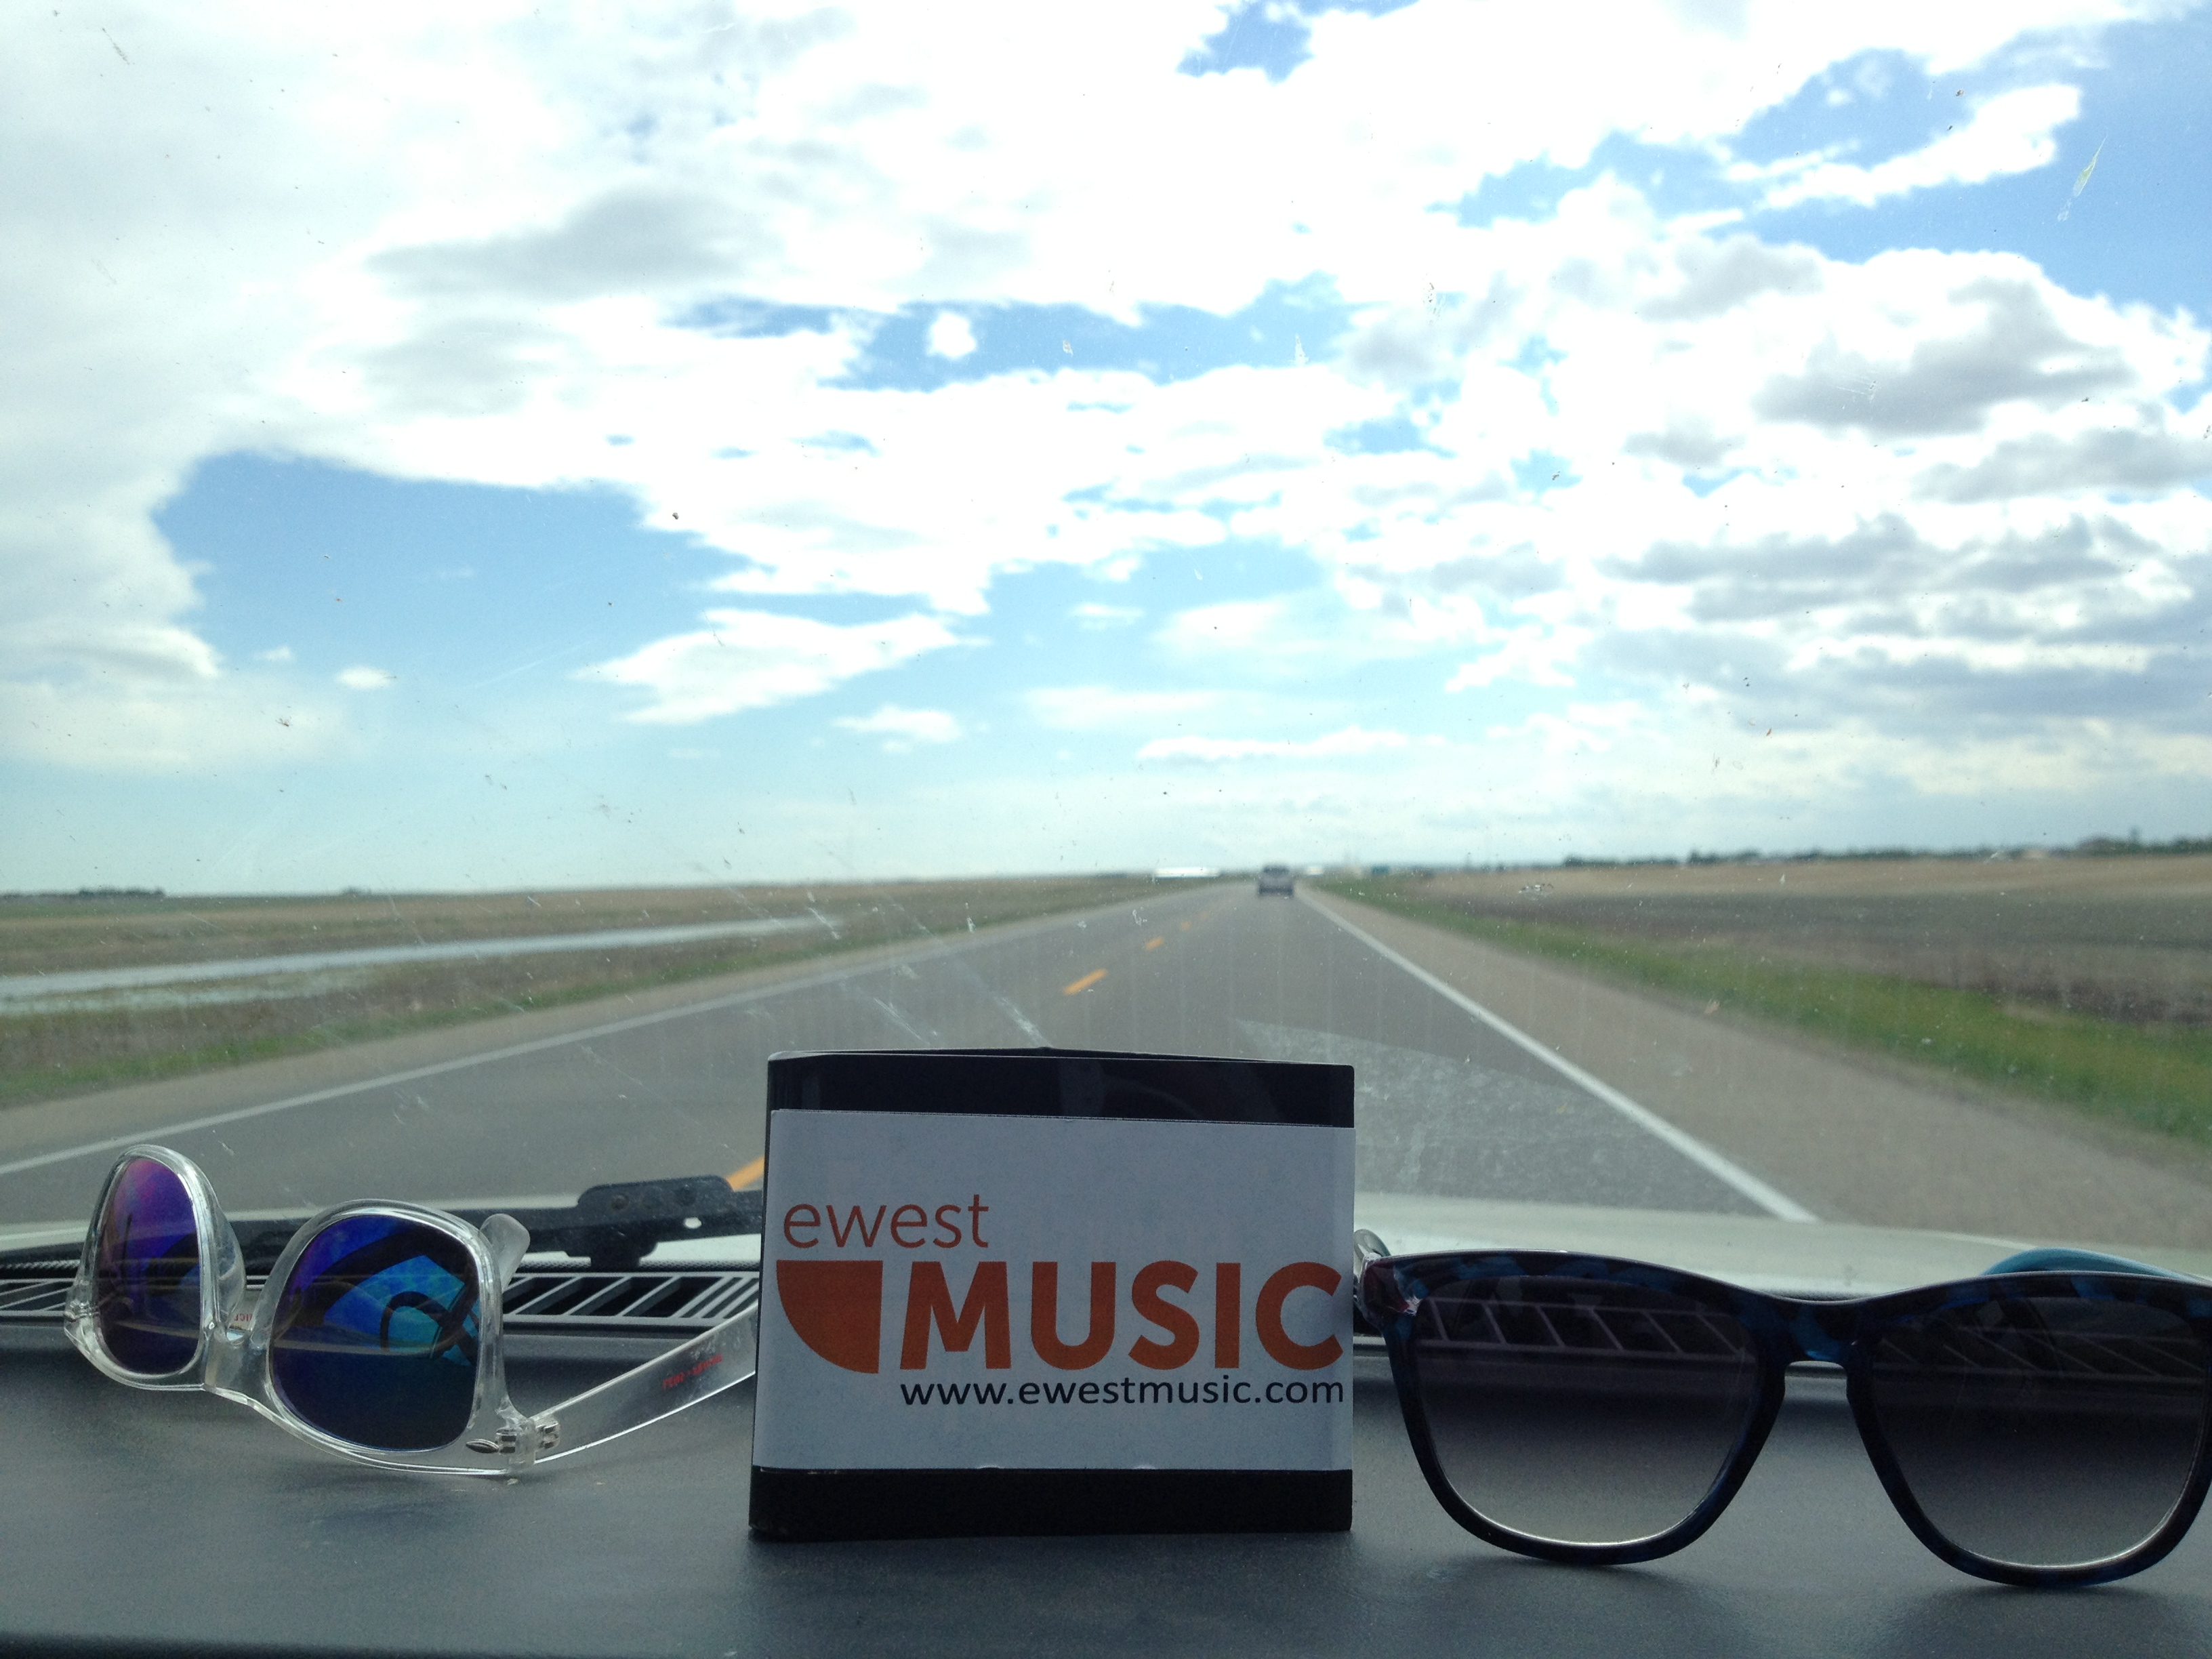 EWest Music driving through the Great Plains of Saskatchewan... (Side Note, apparently you can never have enough sunglasses in a vehicle... At one point I counted 6 on the dashboard)